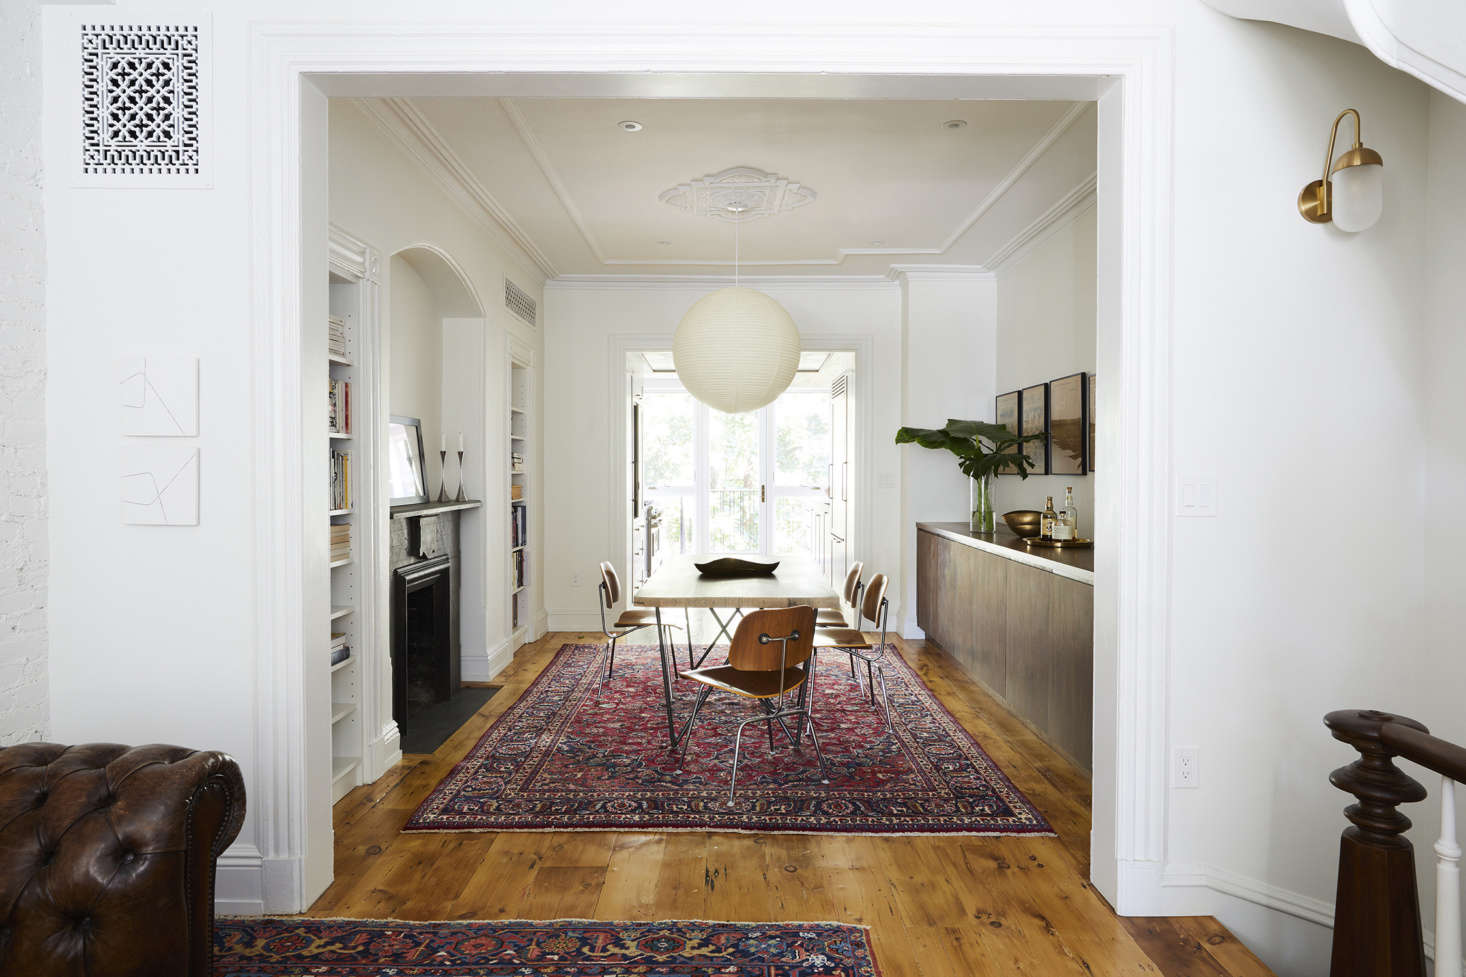 The rooms are arranged enfilade: just beyond the front door, the living area opens to the dining room and a view of the new window wall in the kitchen addition. Openings between rooms were enlarged—carefully: &#8